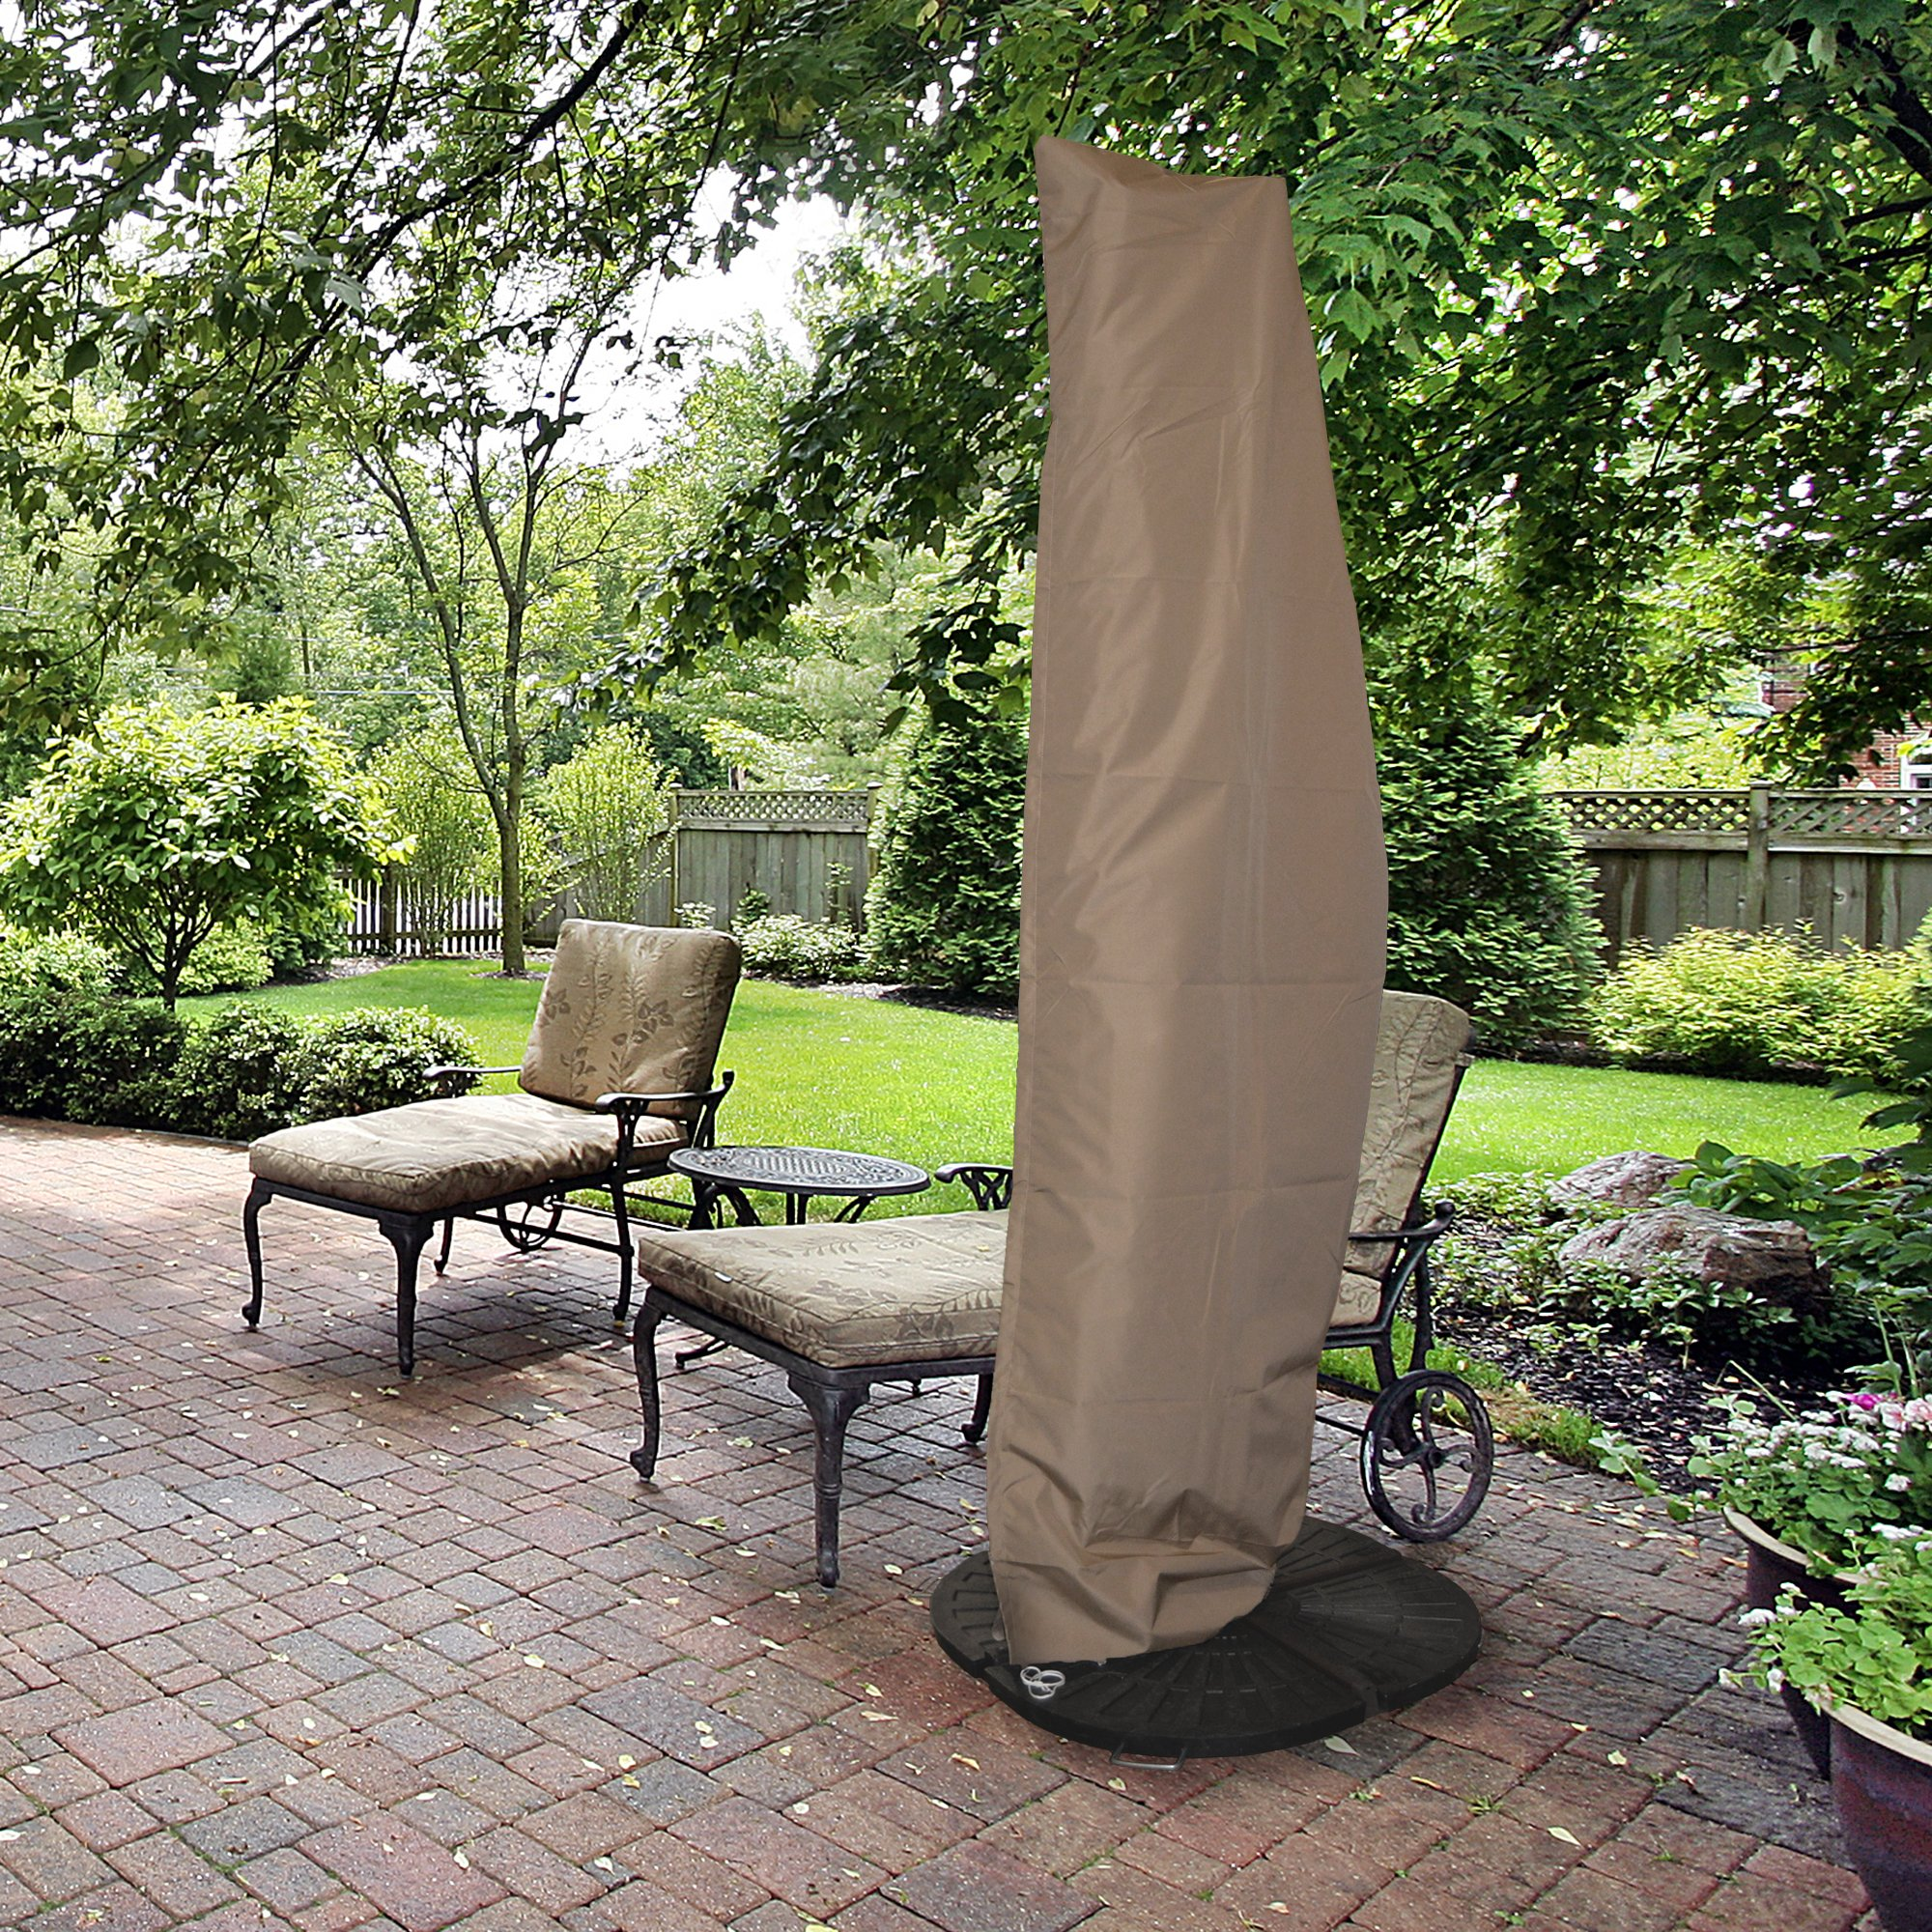 Island Umbrella NU5512 All-Weather Protective Umbrella Cover-Fits 10' to 13' Cantilever Umbrellas by Island Umbrella